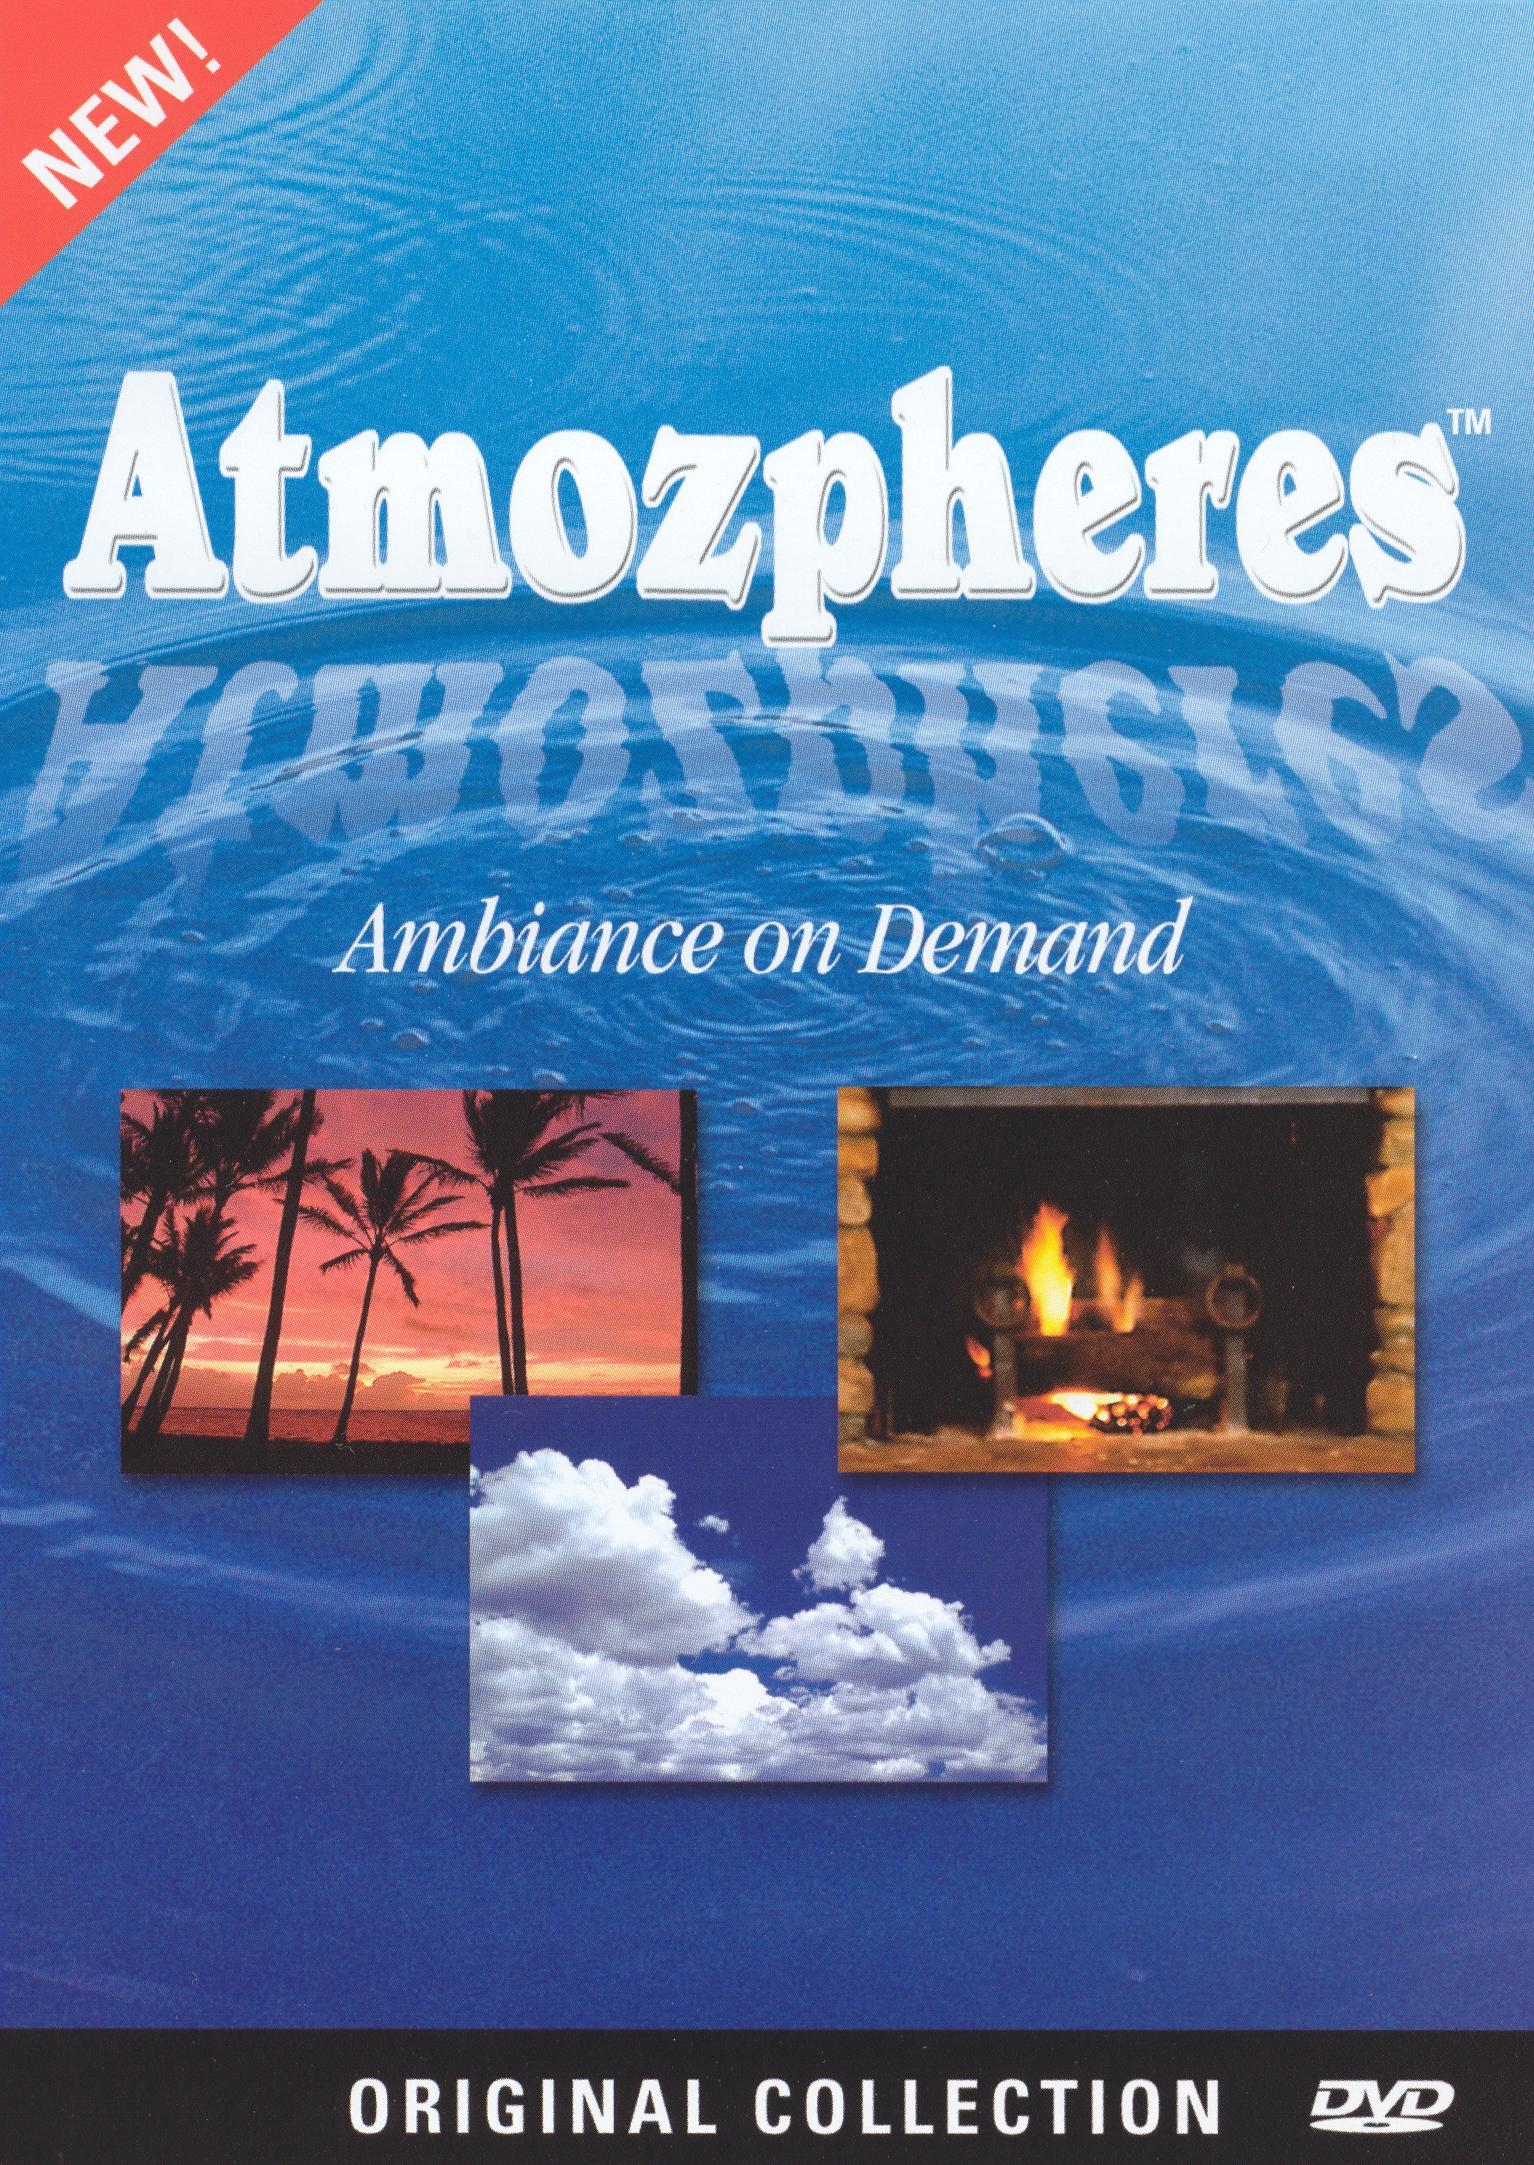 Ambiance on Demand: Original Collection